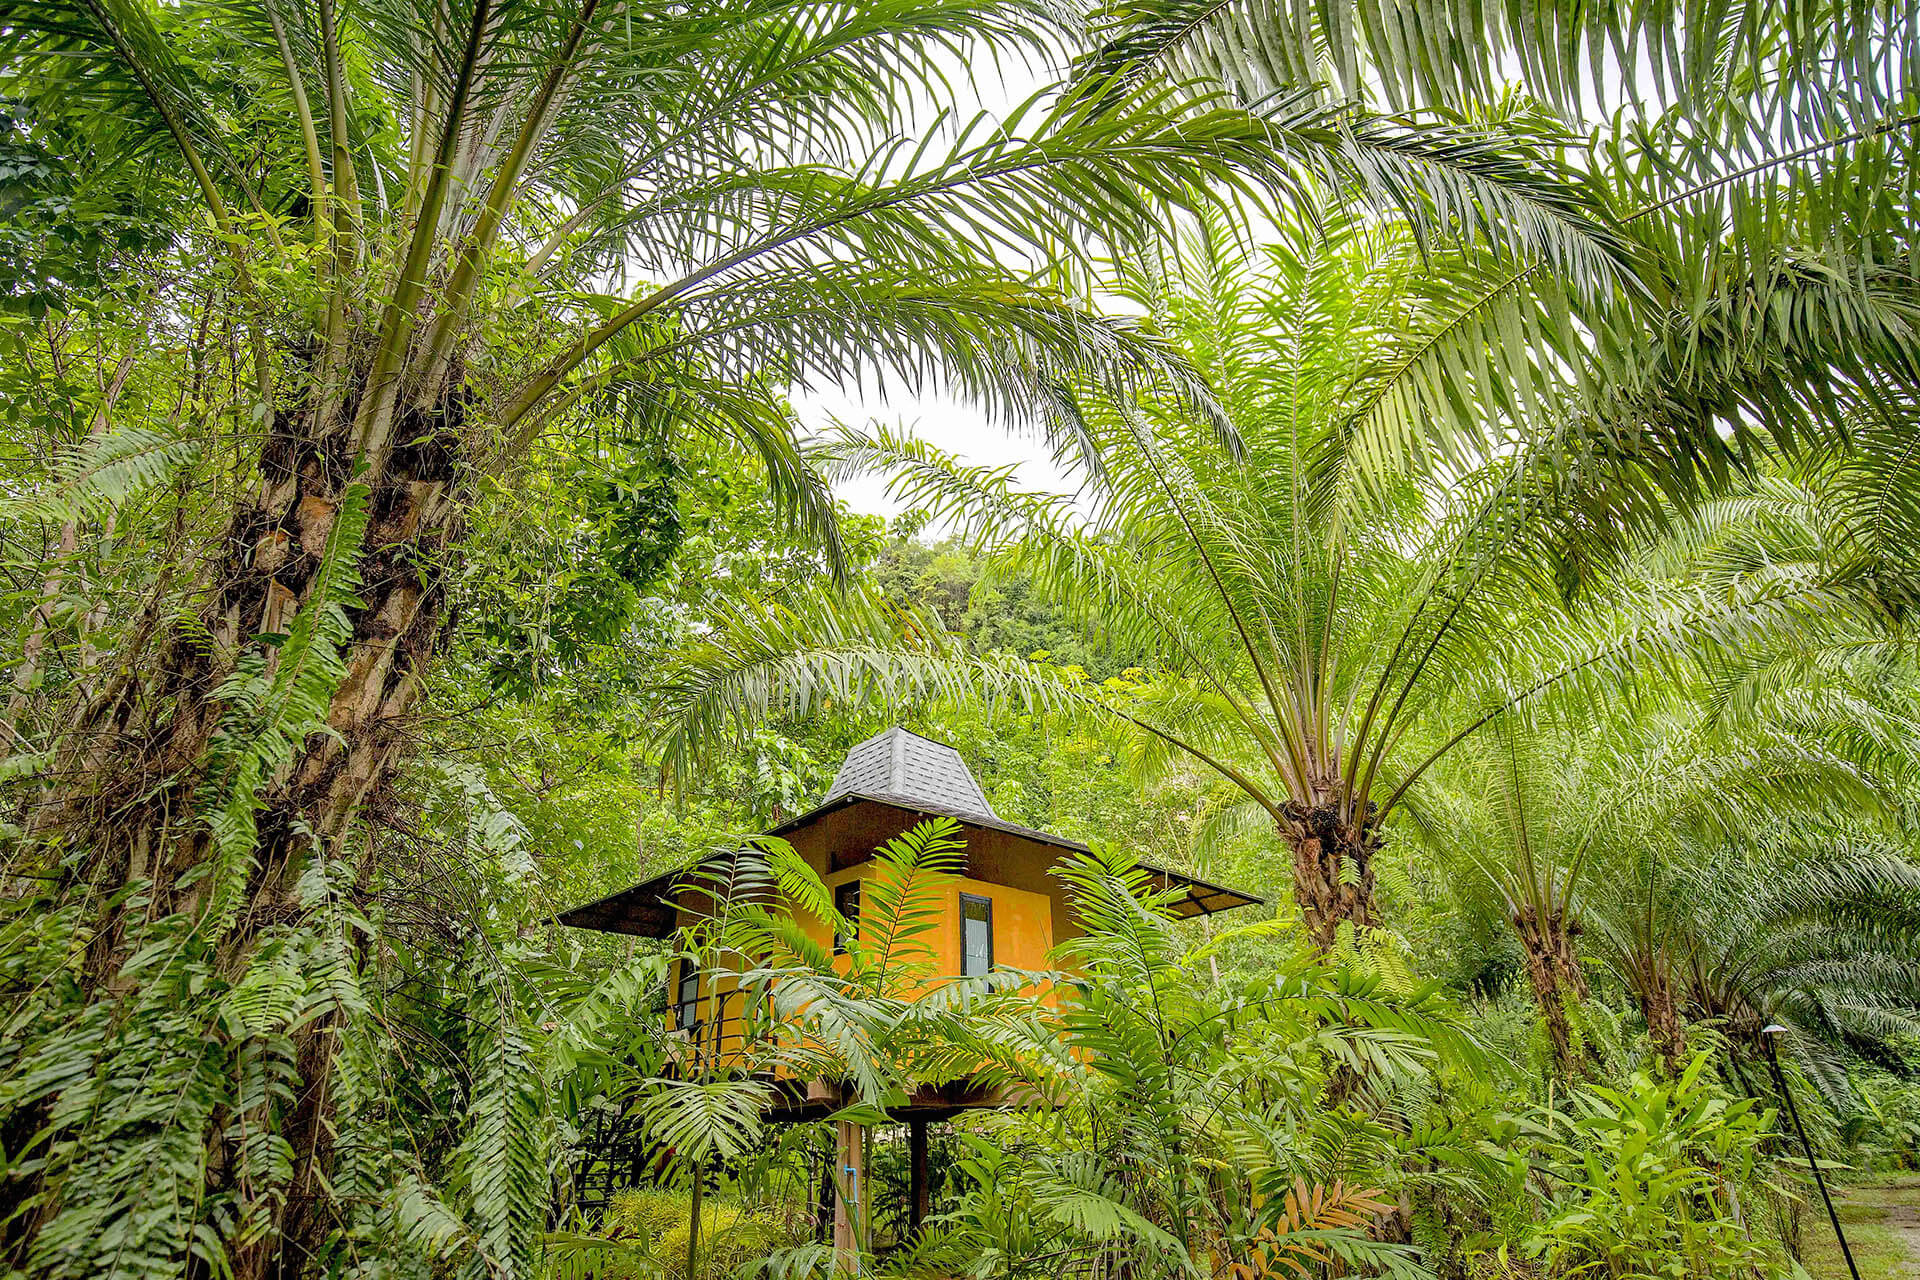 Replacing Oil Palms with Indigenous Forest